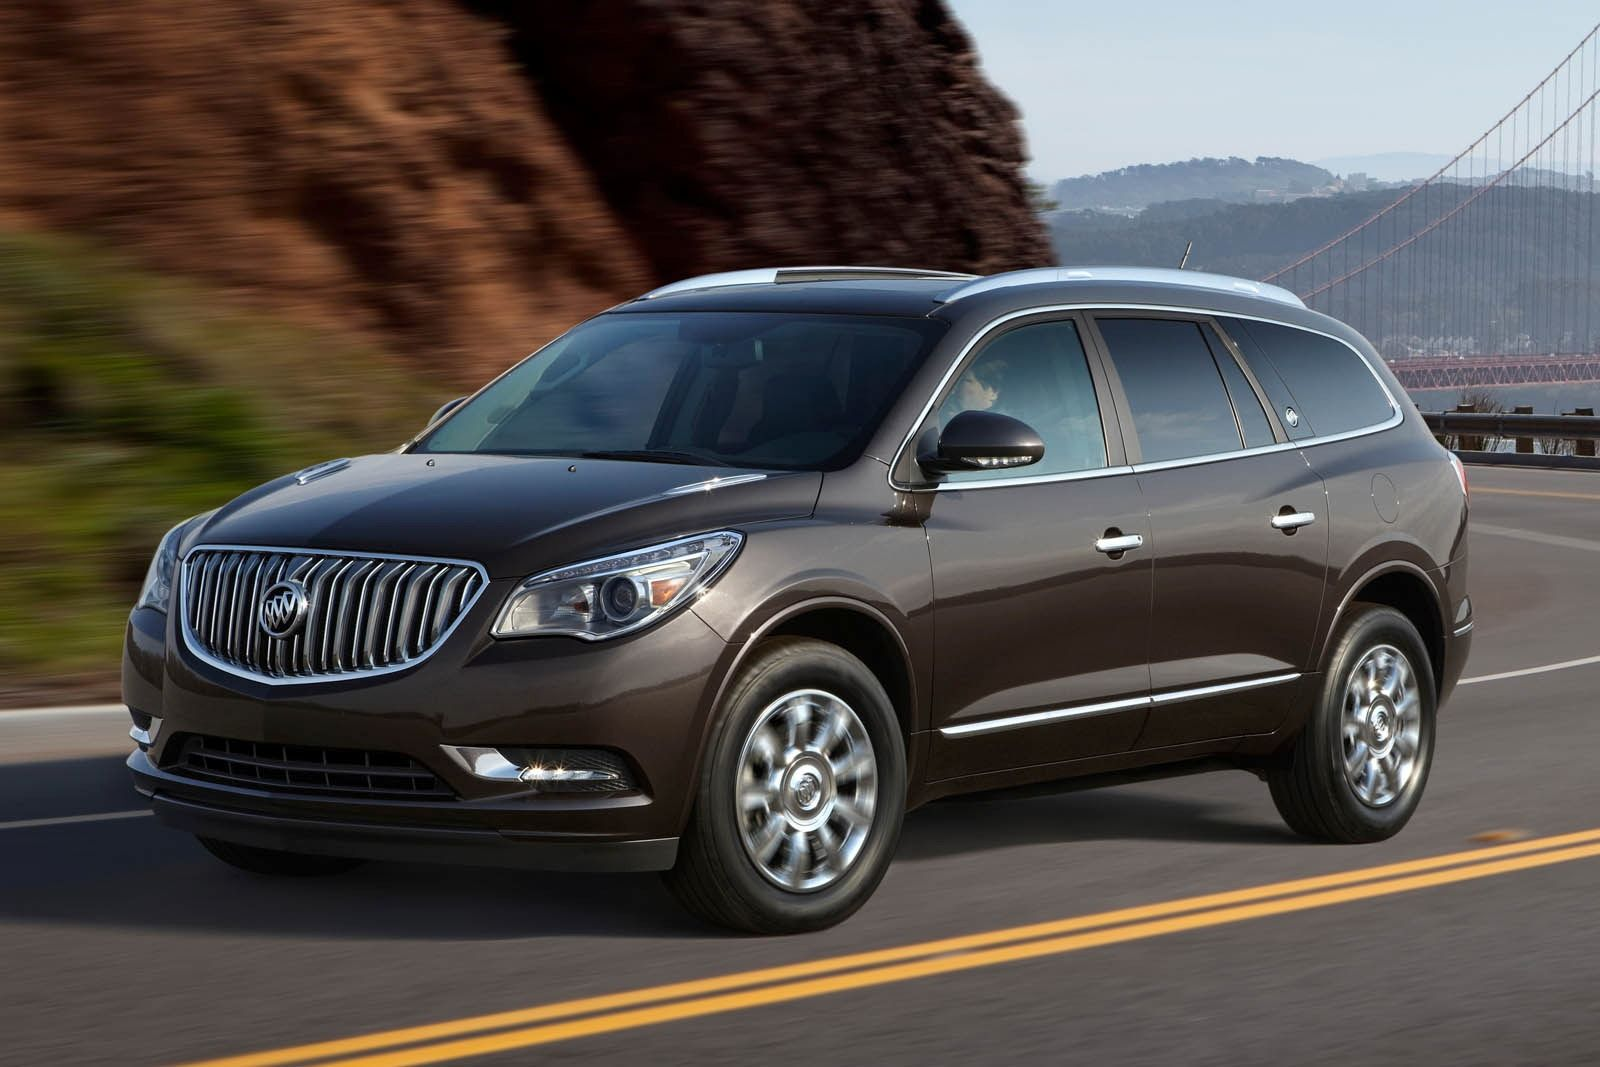 Buick Enclave Premium Group #21